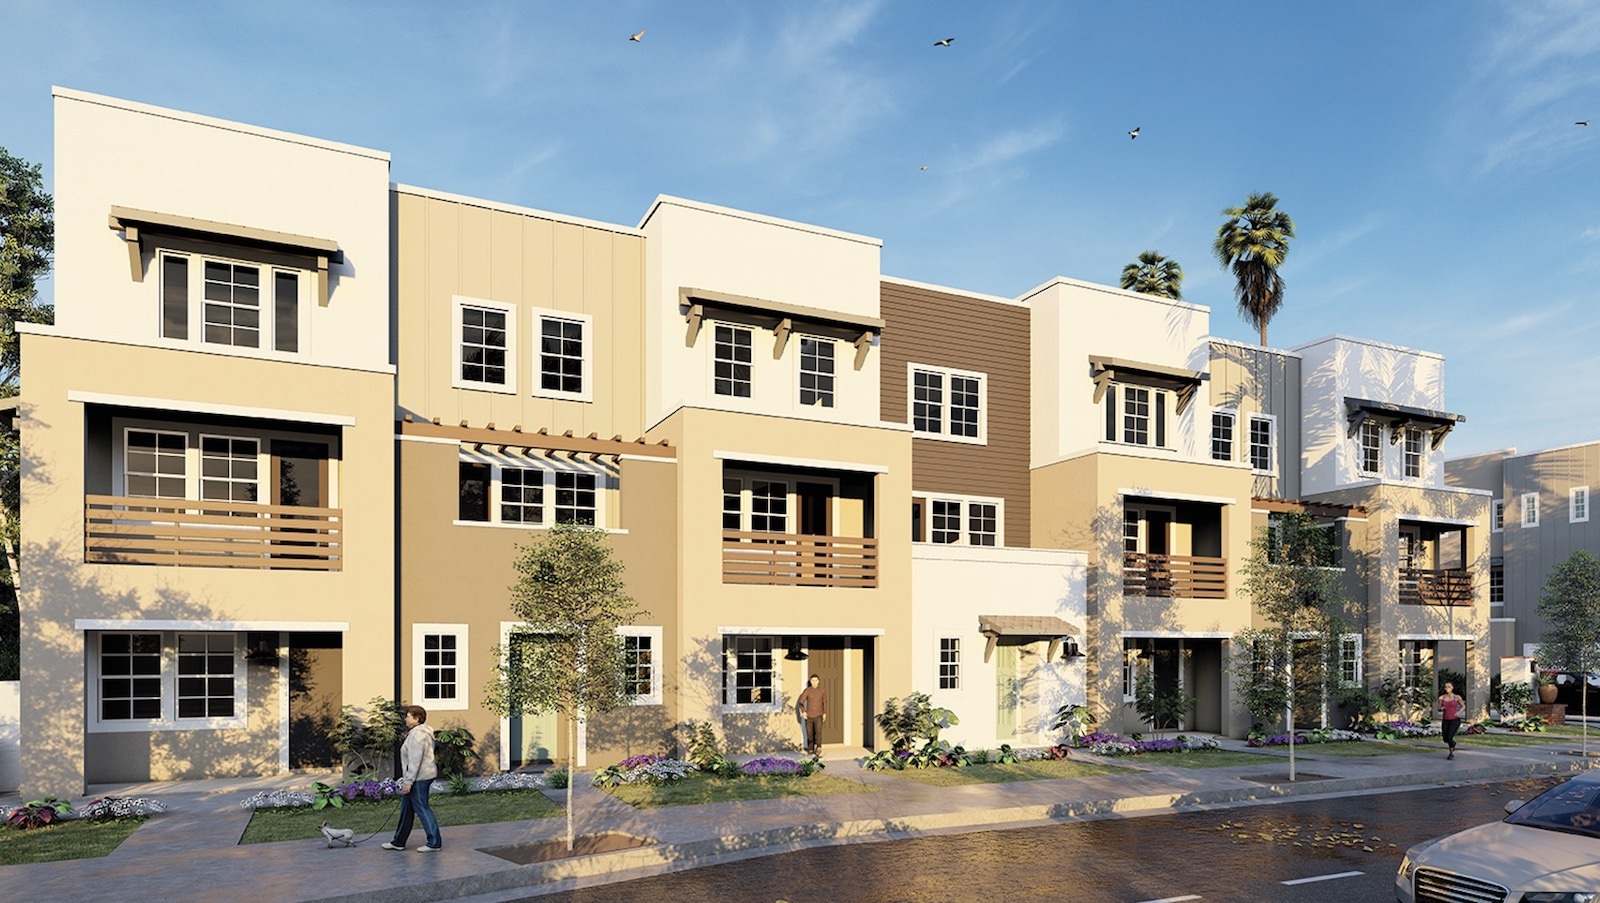 Three-story townhomes designed by Kevin L. Crook Architect, exterior facade